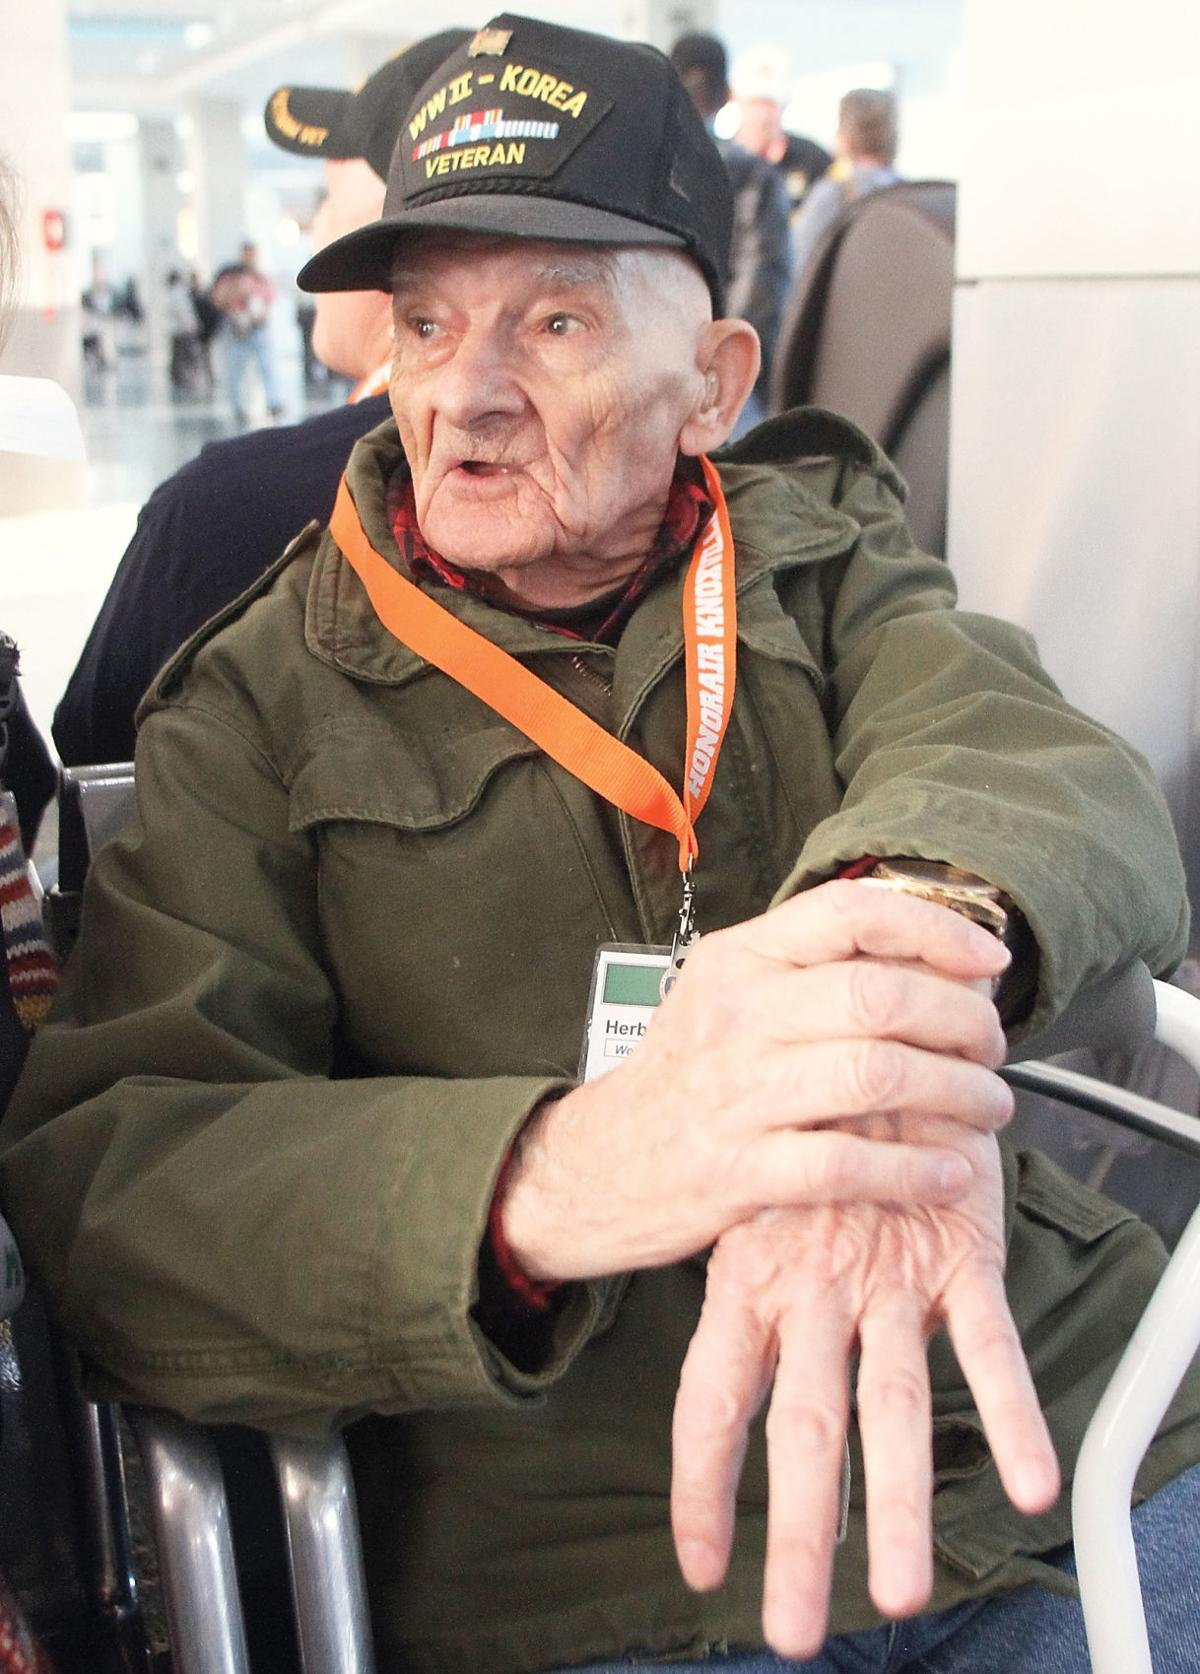 Herbert Franklin who served in the U.S. Army in World War I and Korea will fly to Washington D.C. on Honor Air to visit the war memorials